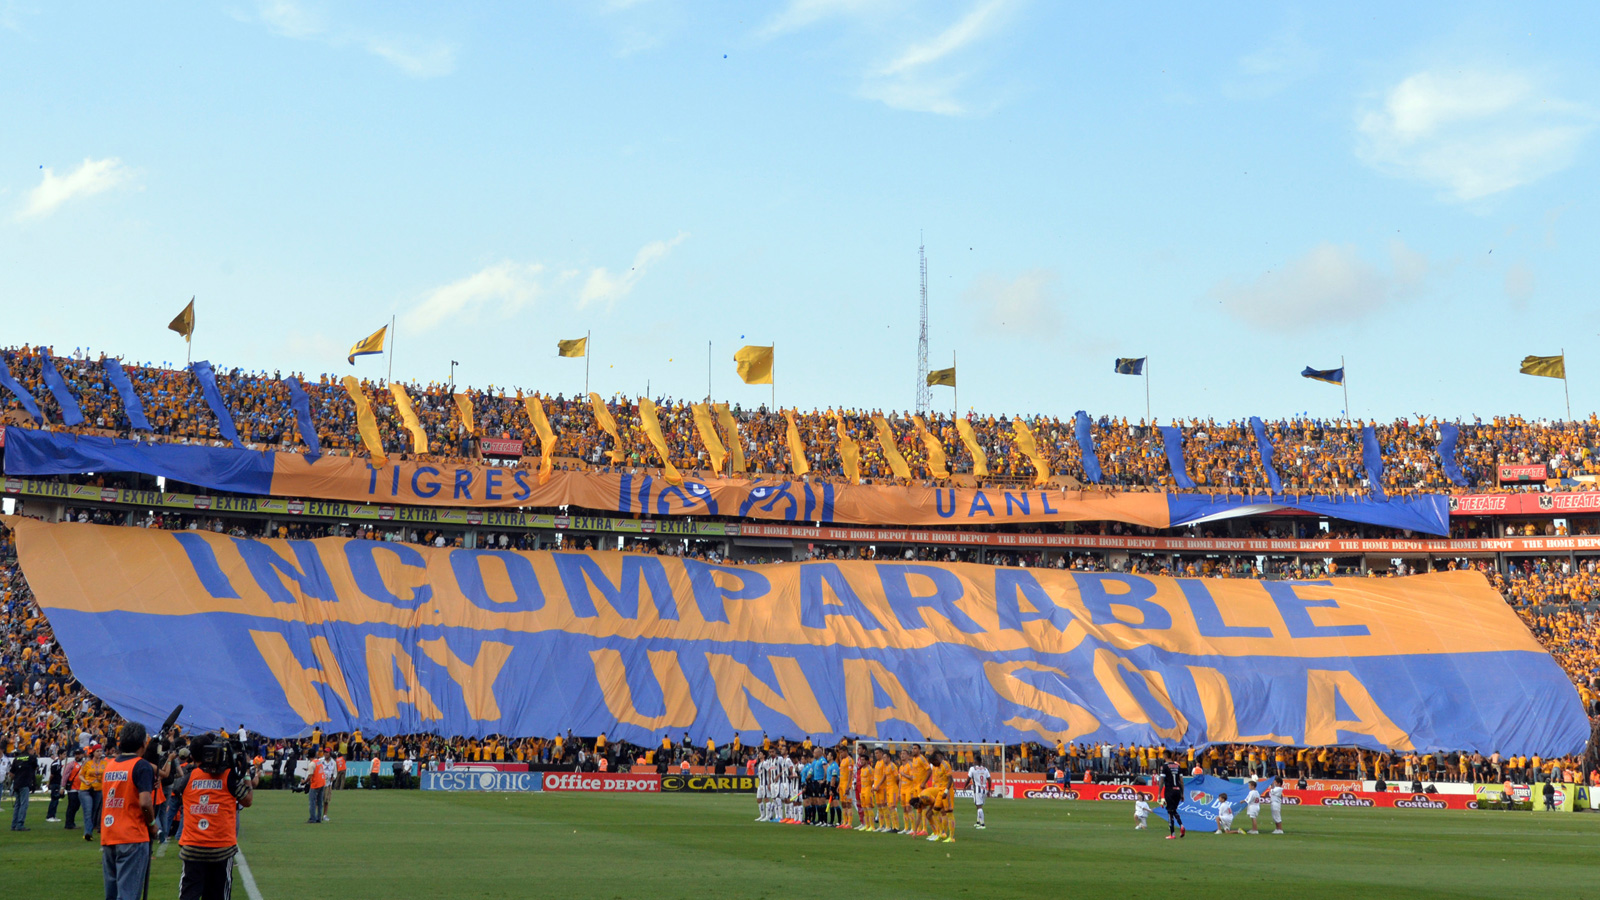 Ahead of a clash with Mexican foe Monterrey, Tigres players are treated by this message by its fervent supporters.